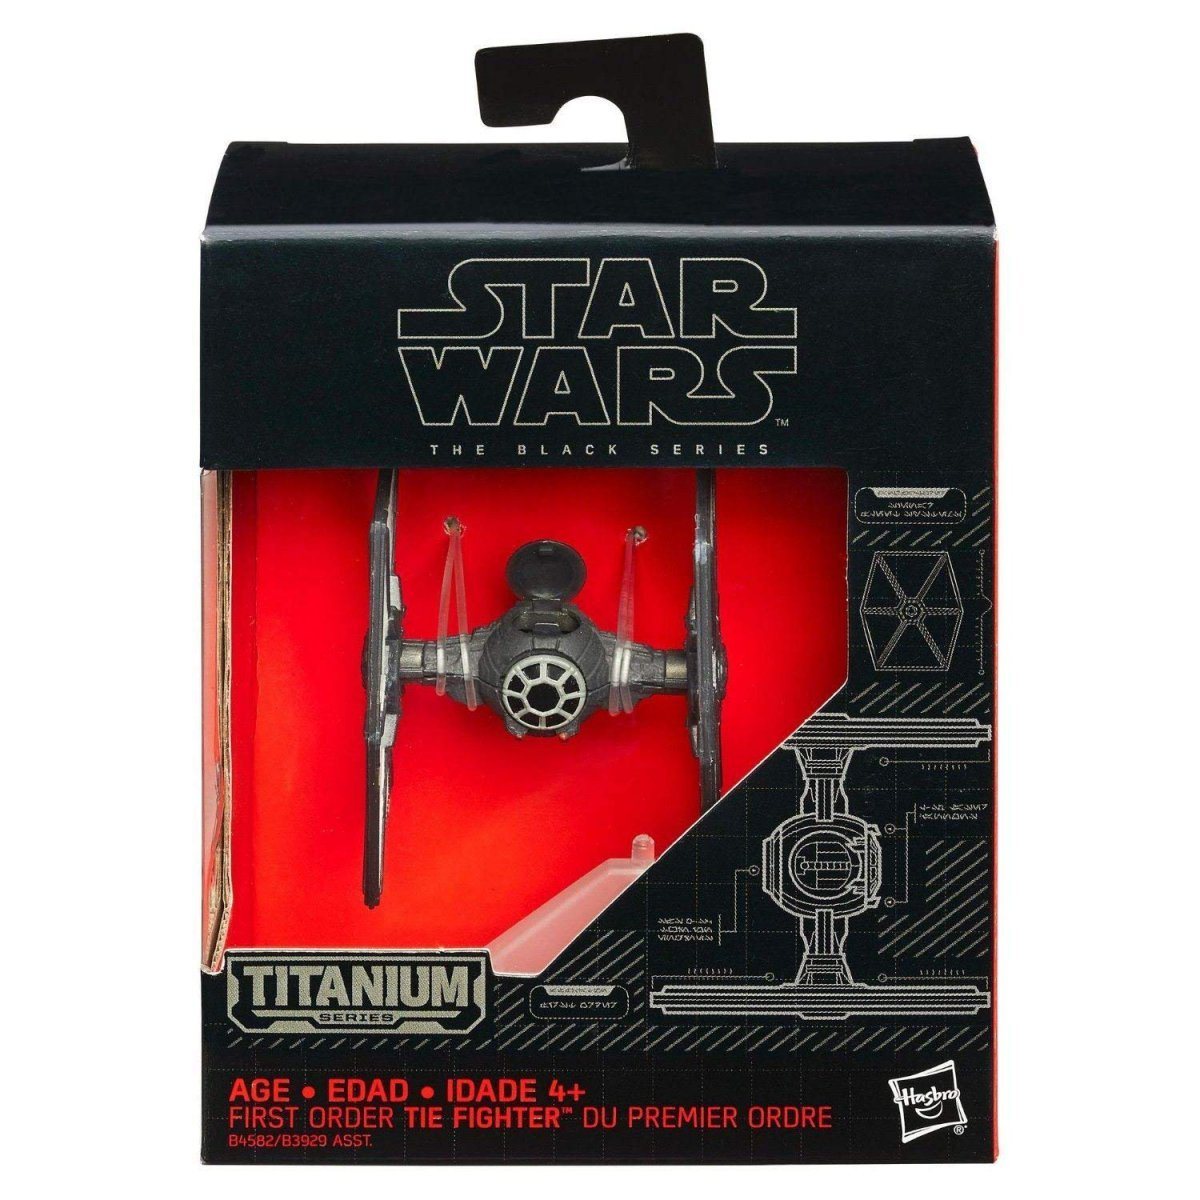 Nave Star Wars First Order Tie Fighter Titanium Series - Hasbro B4582